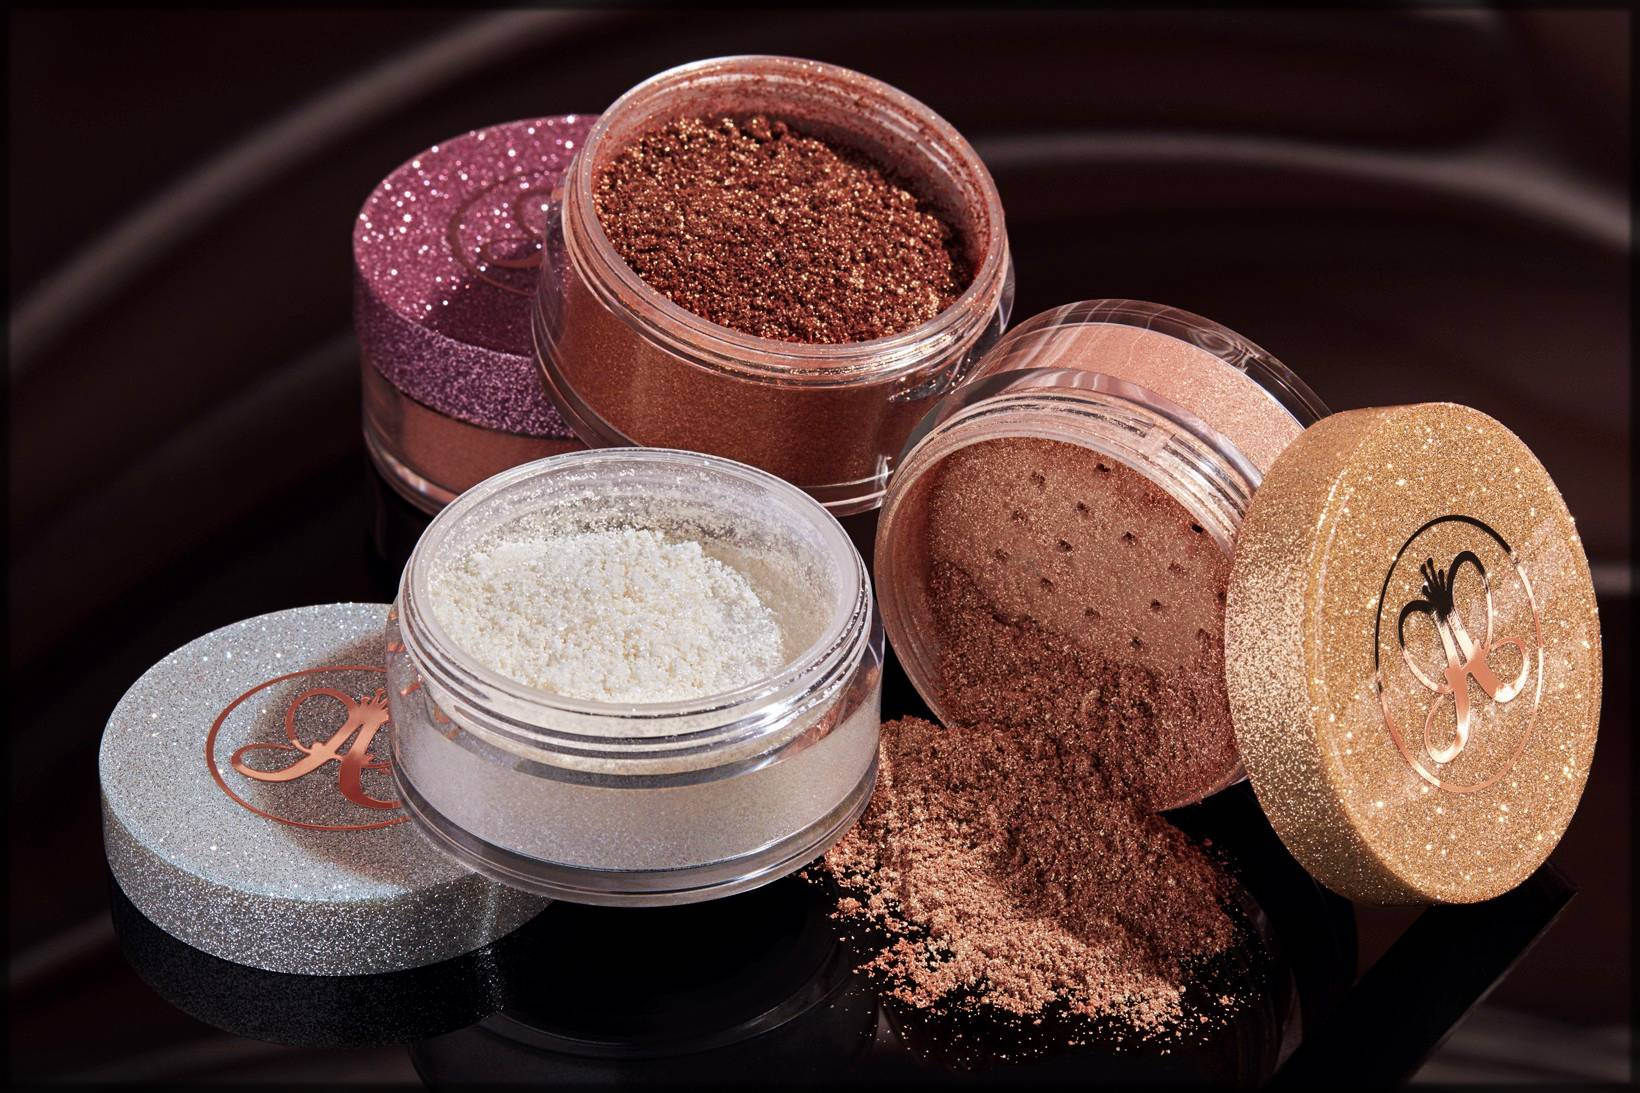 Shimmery powder highlighters